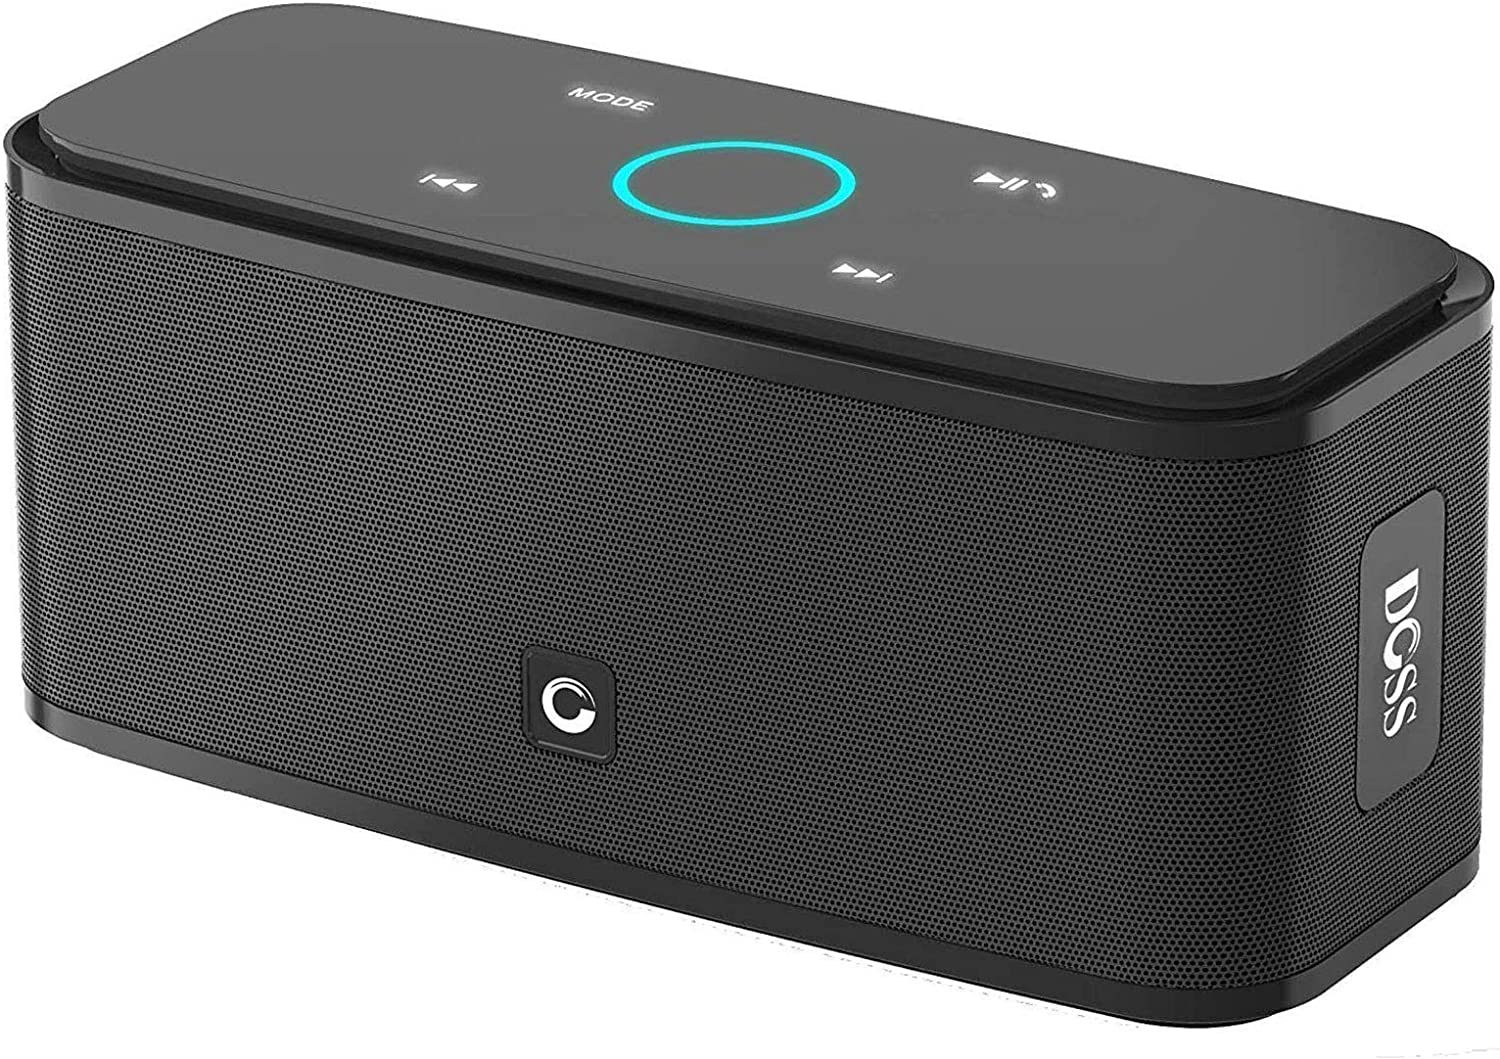 DOSS SoundBox Touch Portable Wireless Bluetooth Speakers with 12W HD Sound and Bass, 20H Playtime, Handsfree, Speakers for Home, Outdoor, Travel-Black: Electronics